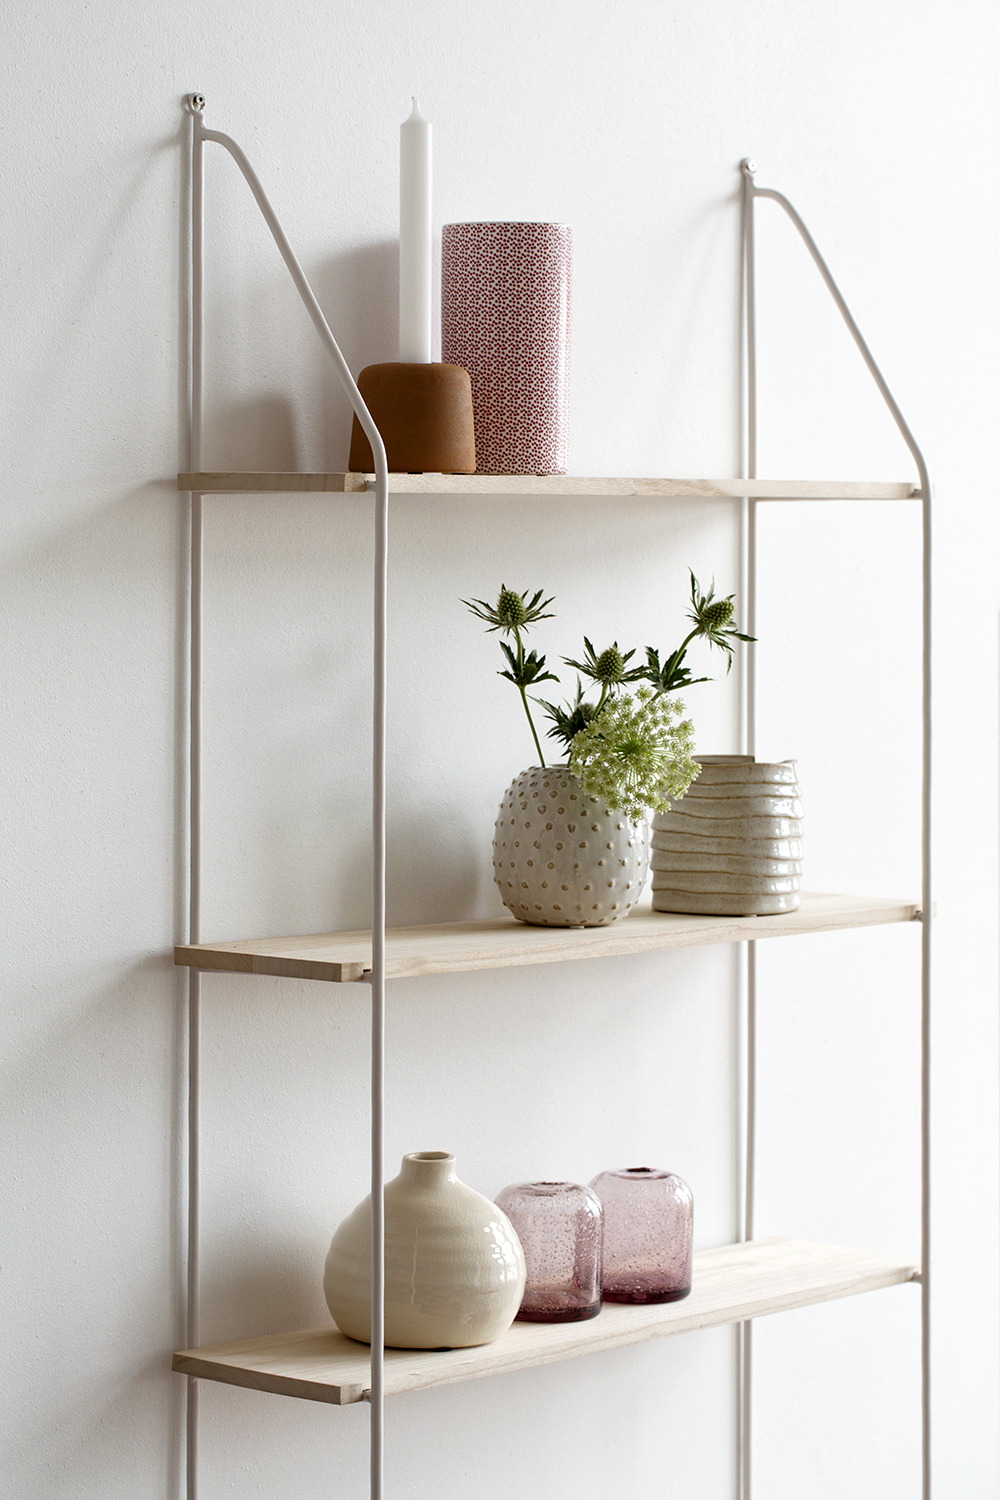 SostreneGrene_SpringCollection2017 (shelving unit 2A)